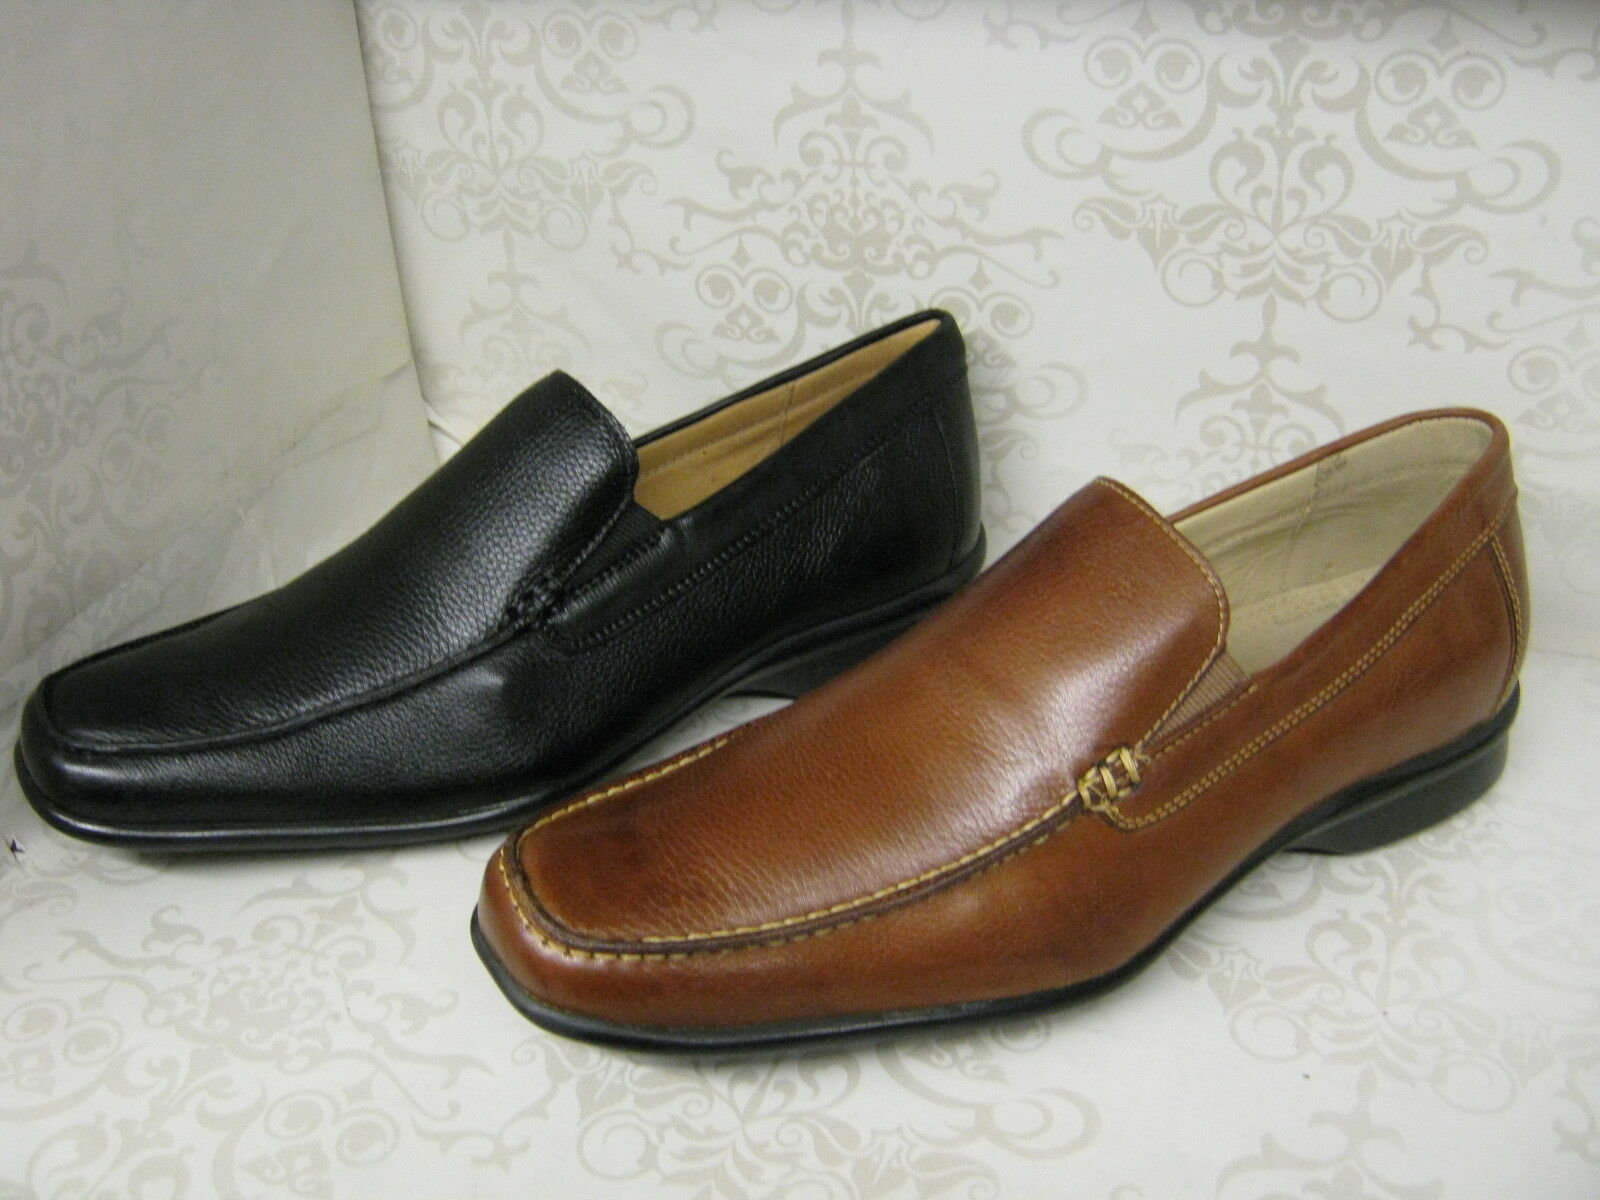 Hombre Leather Anatomic & Co Canudos 323240 Cognac Or Negro Leather Hombre Slip On Moccasin zapatos f64f1b